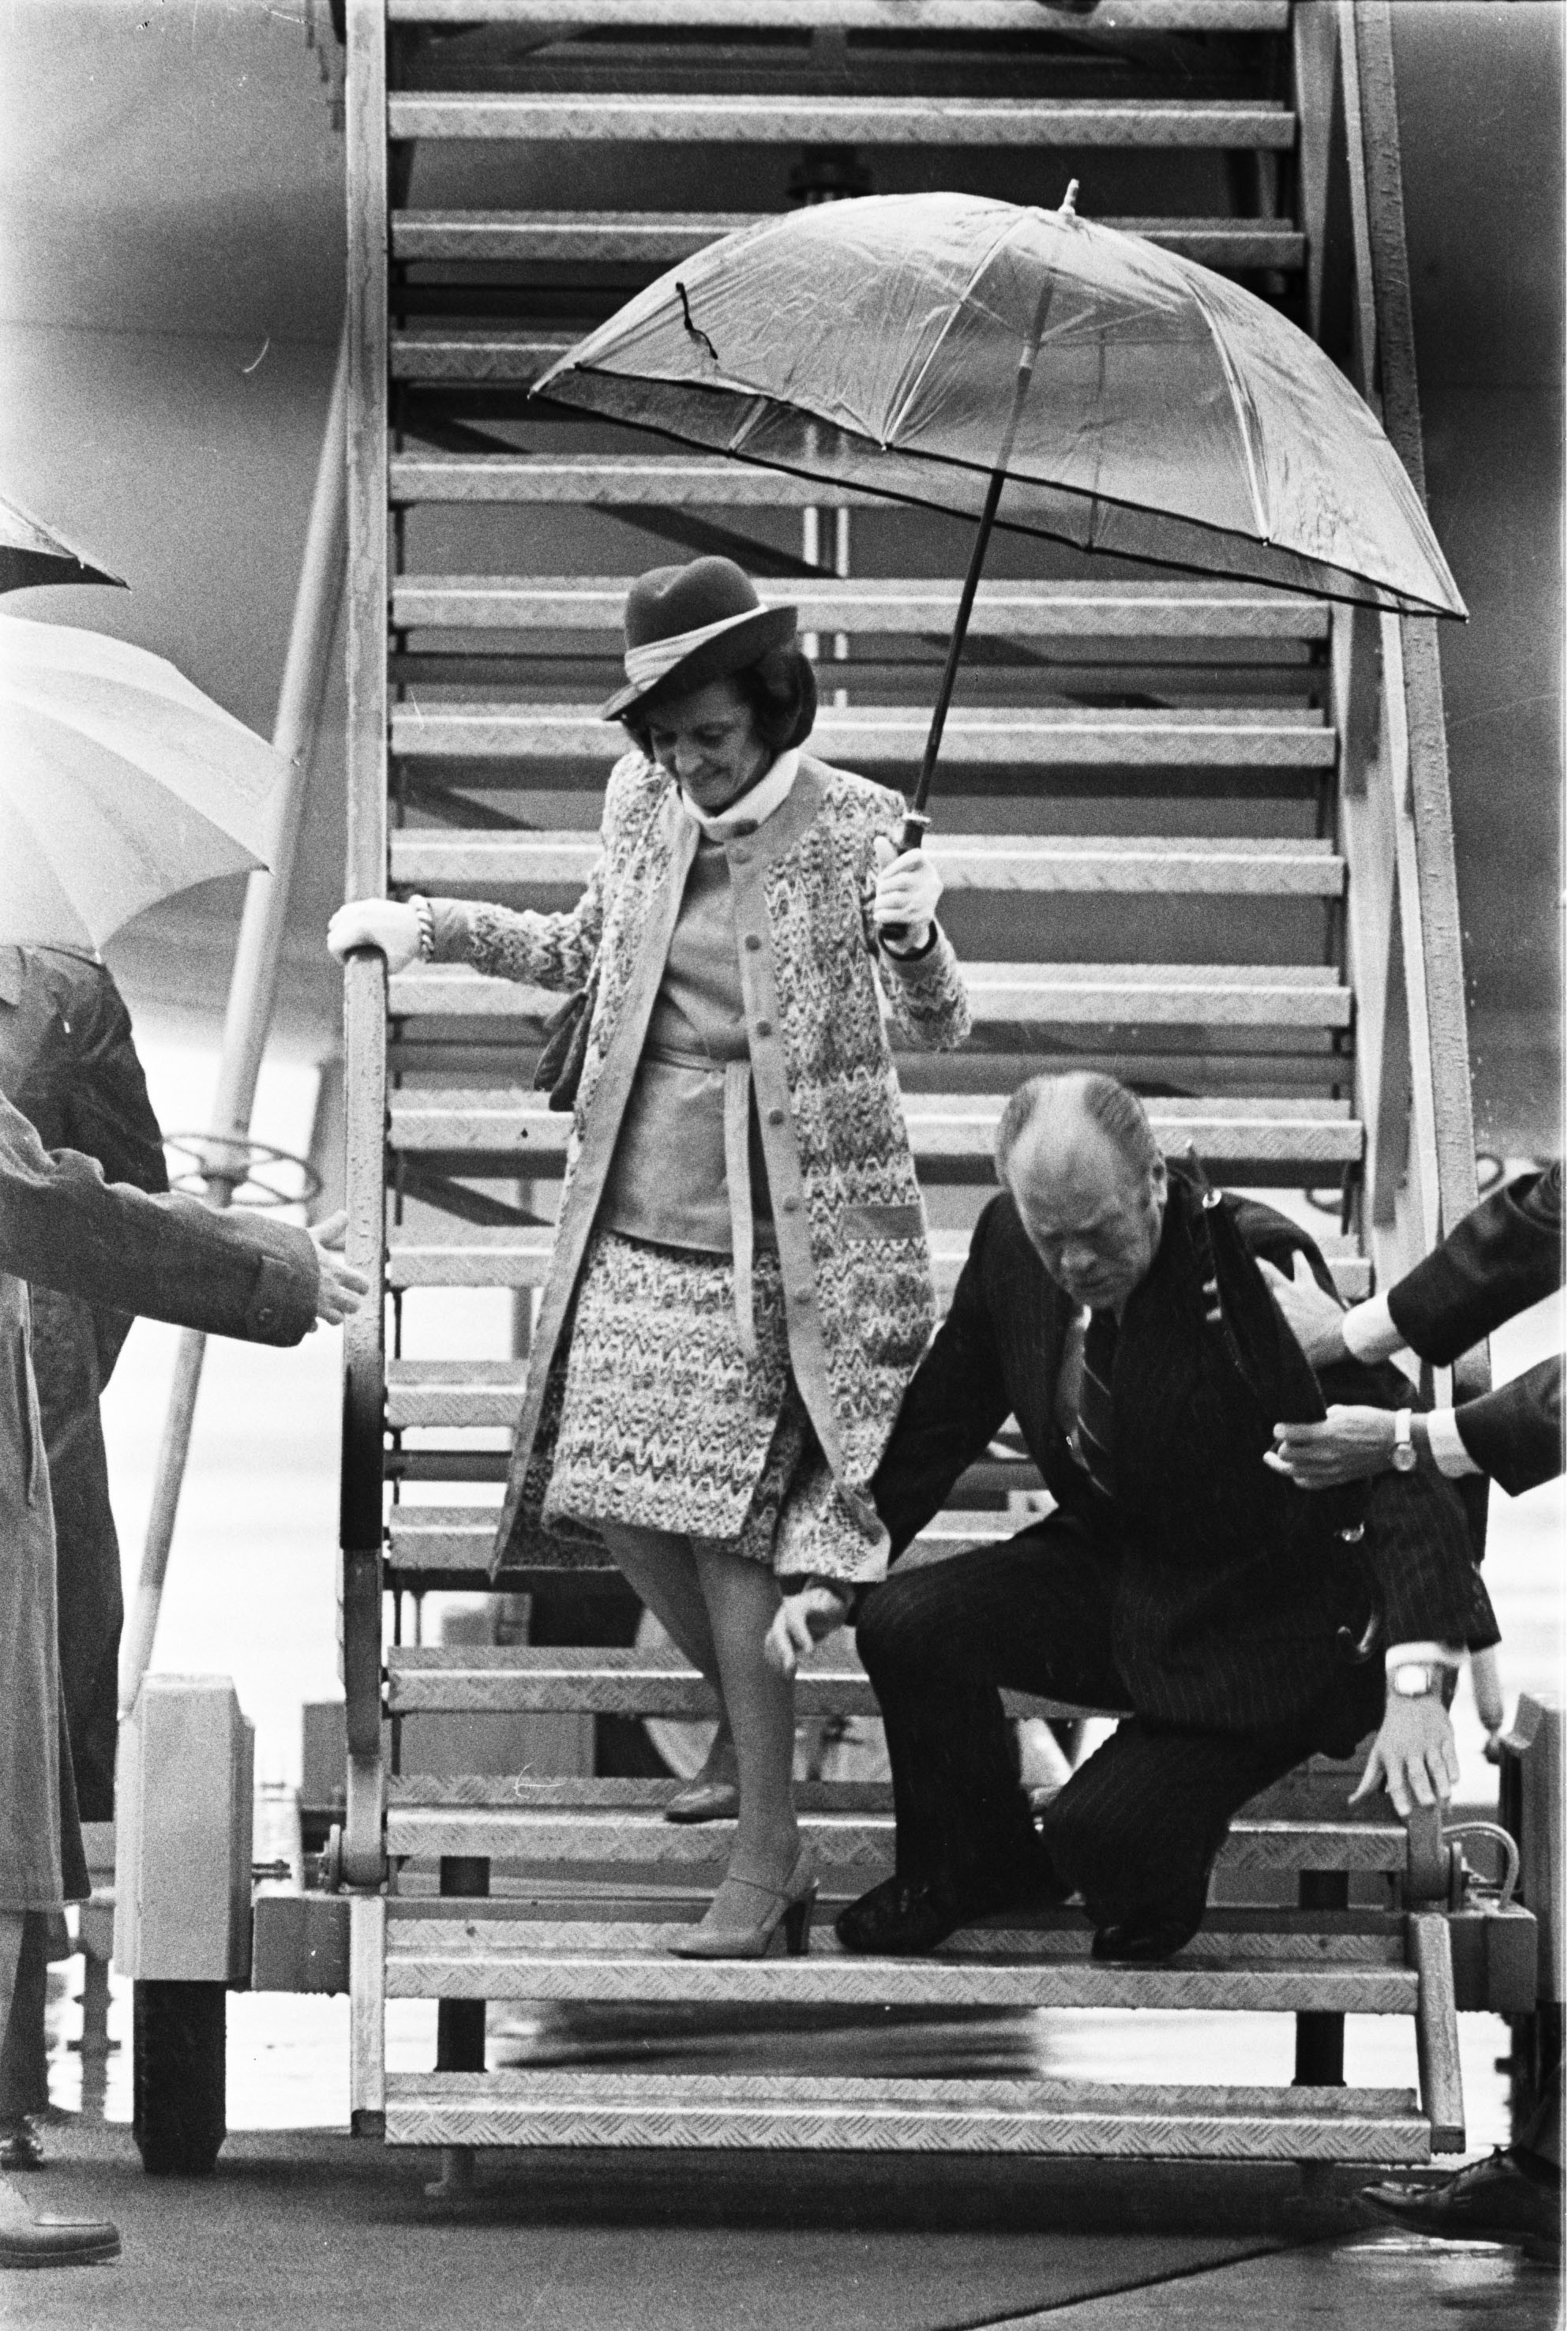 While visiting Austria in 1975, President Gerald Ford's knee gave way and he tumbled down the Air Force One stairs. A few more falls (one was even up the stairs) combined with Chevy Chase's Saturday Night Live pratfall routine, earned the former University of Michigan football star a reputation as a bumbling klutz.